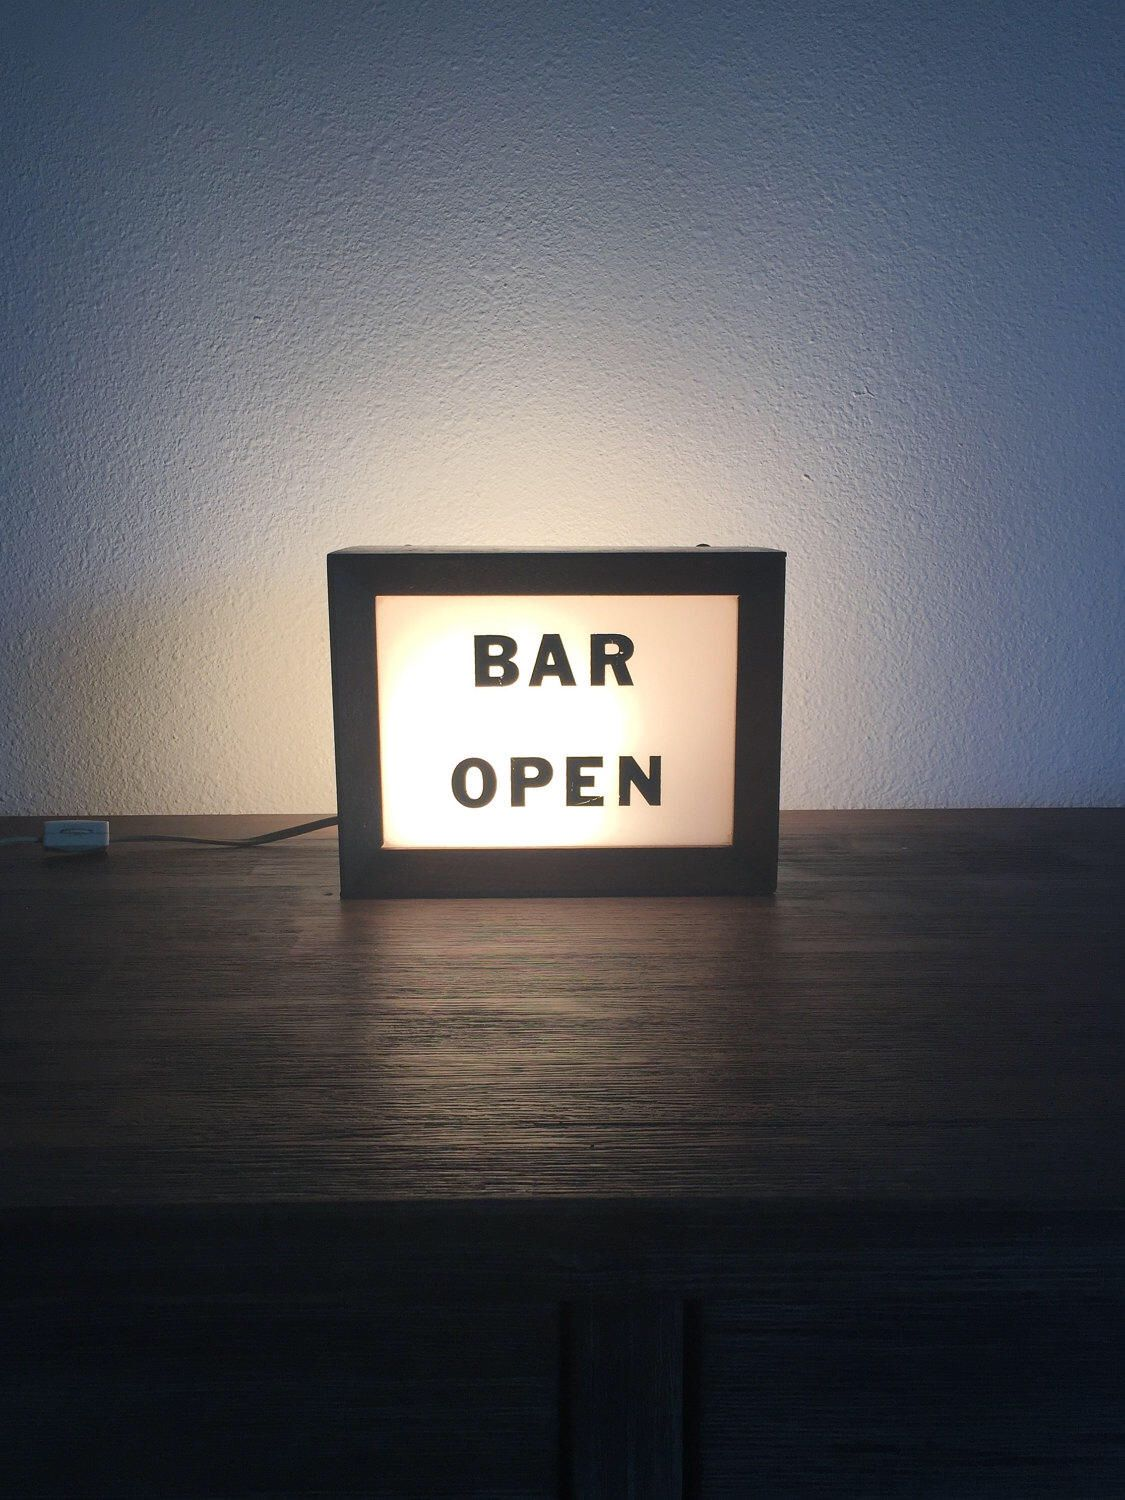 Vintage bar open light up box sign bar open sign bar open light vintage bar open light up box sign bar open sign bar open light light up sign wood light up bar sign bar open light box vintage bar aloadofball Image collections